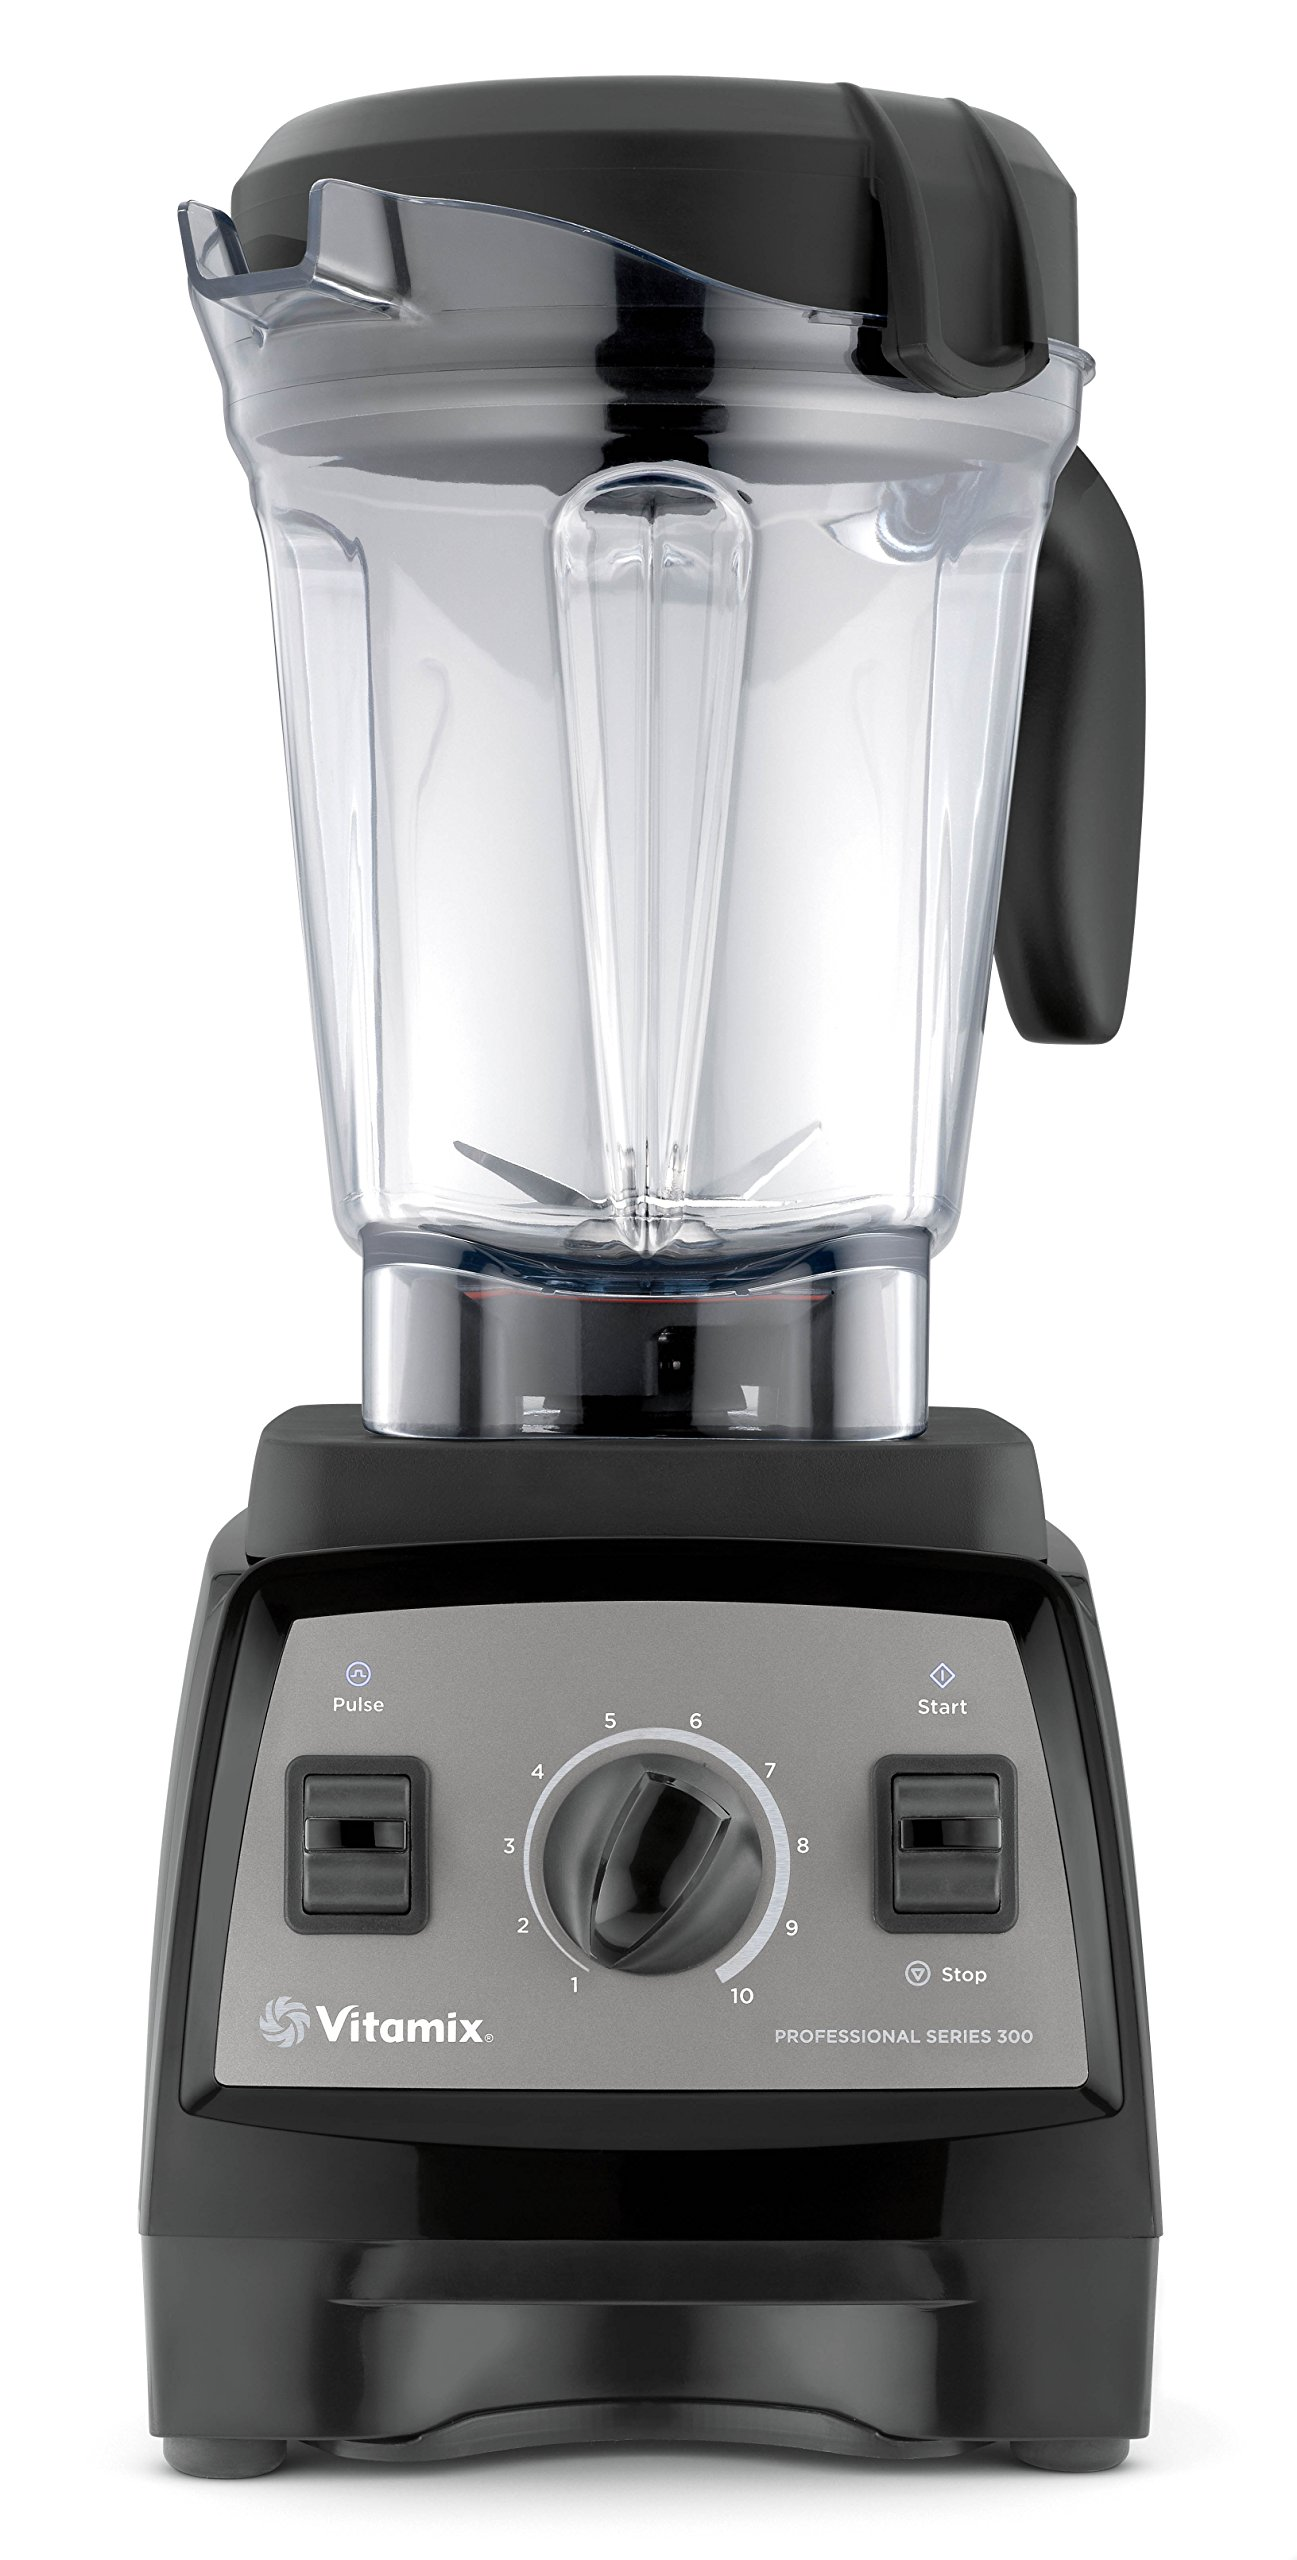 Vitamix-Professional-Series-300-Mixer